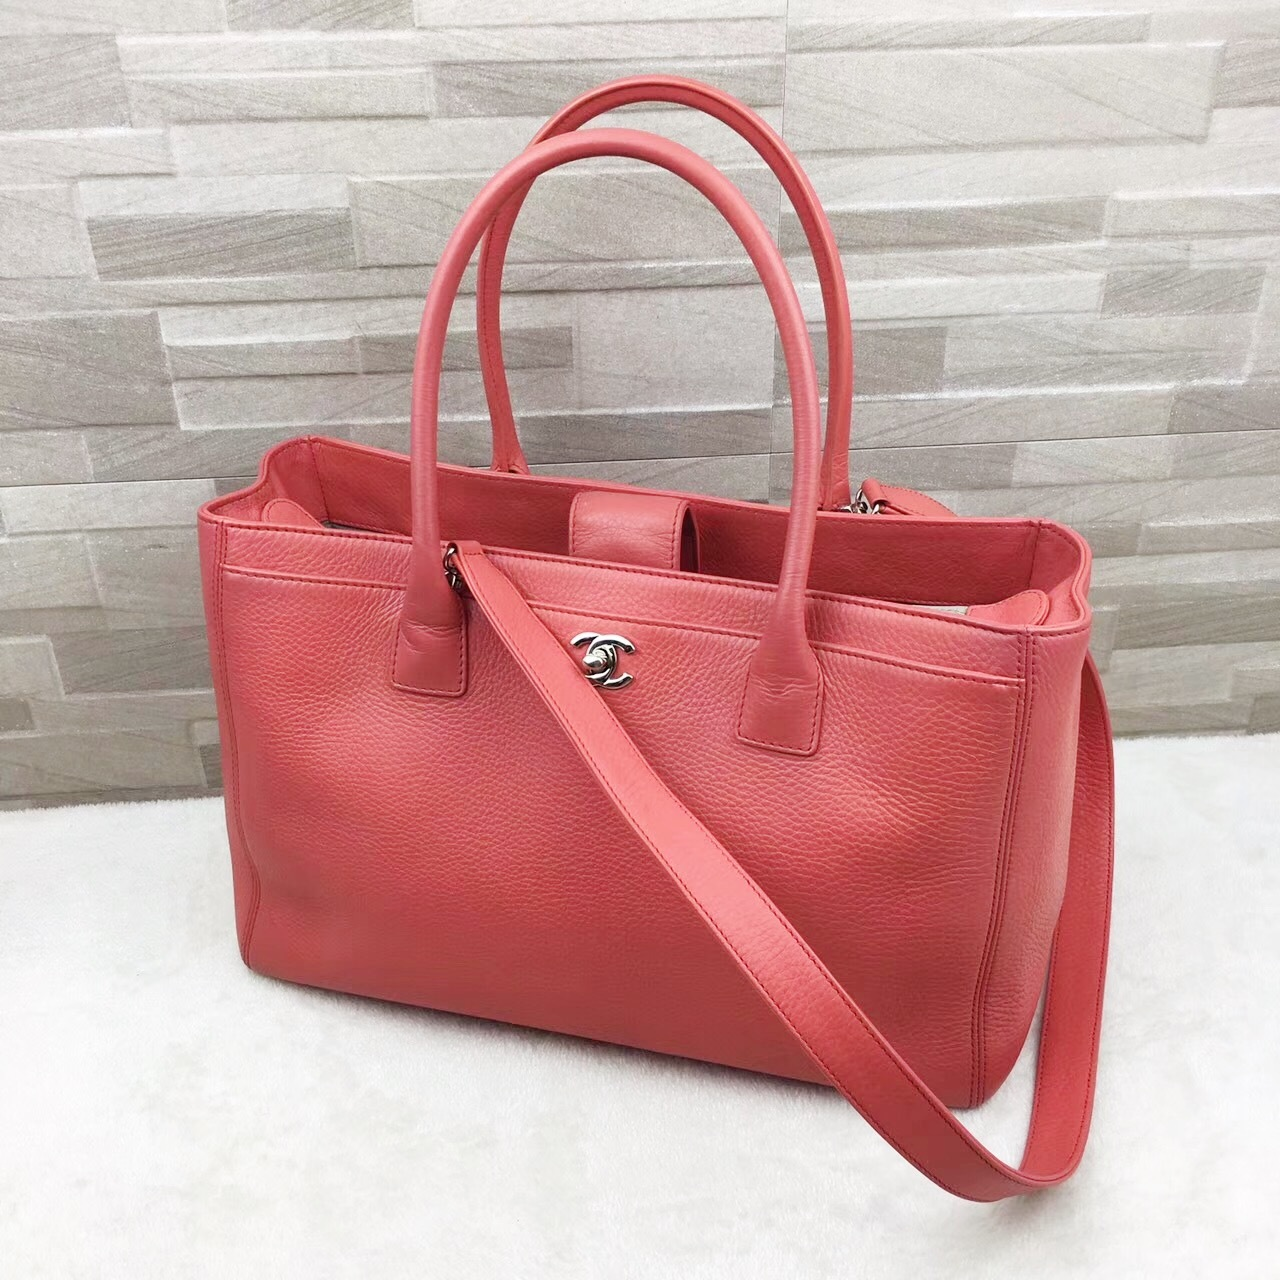 0d3593ee42f1 AUTHENTIC CHANEL CORAL PINK EXECUTIVE CERF LARGE TOTE SHOPPER BAG ...